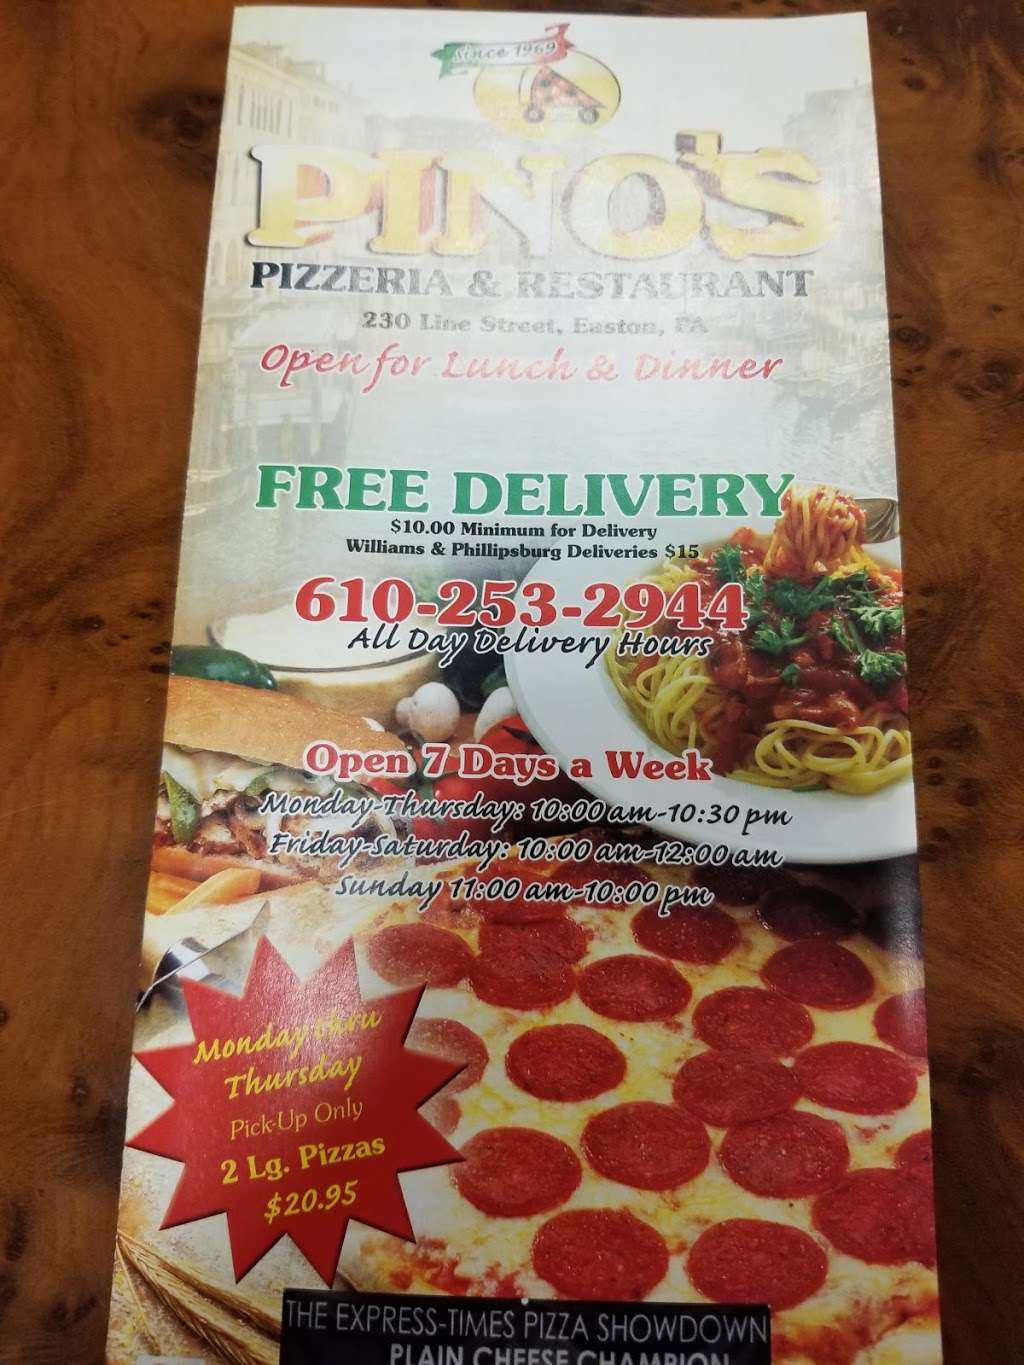 Pinos Pizzeria - restaurant  | Photo 7 of 9 | Address: 230 Line St, Easton, PA 18042, USA | Phone: (610) 253-2944